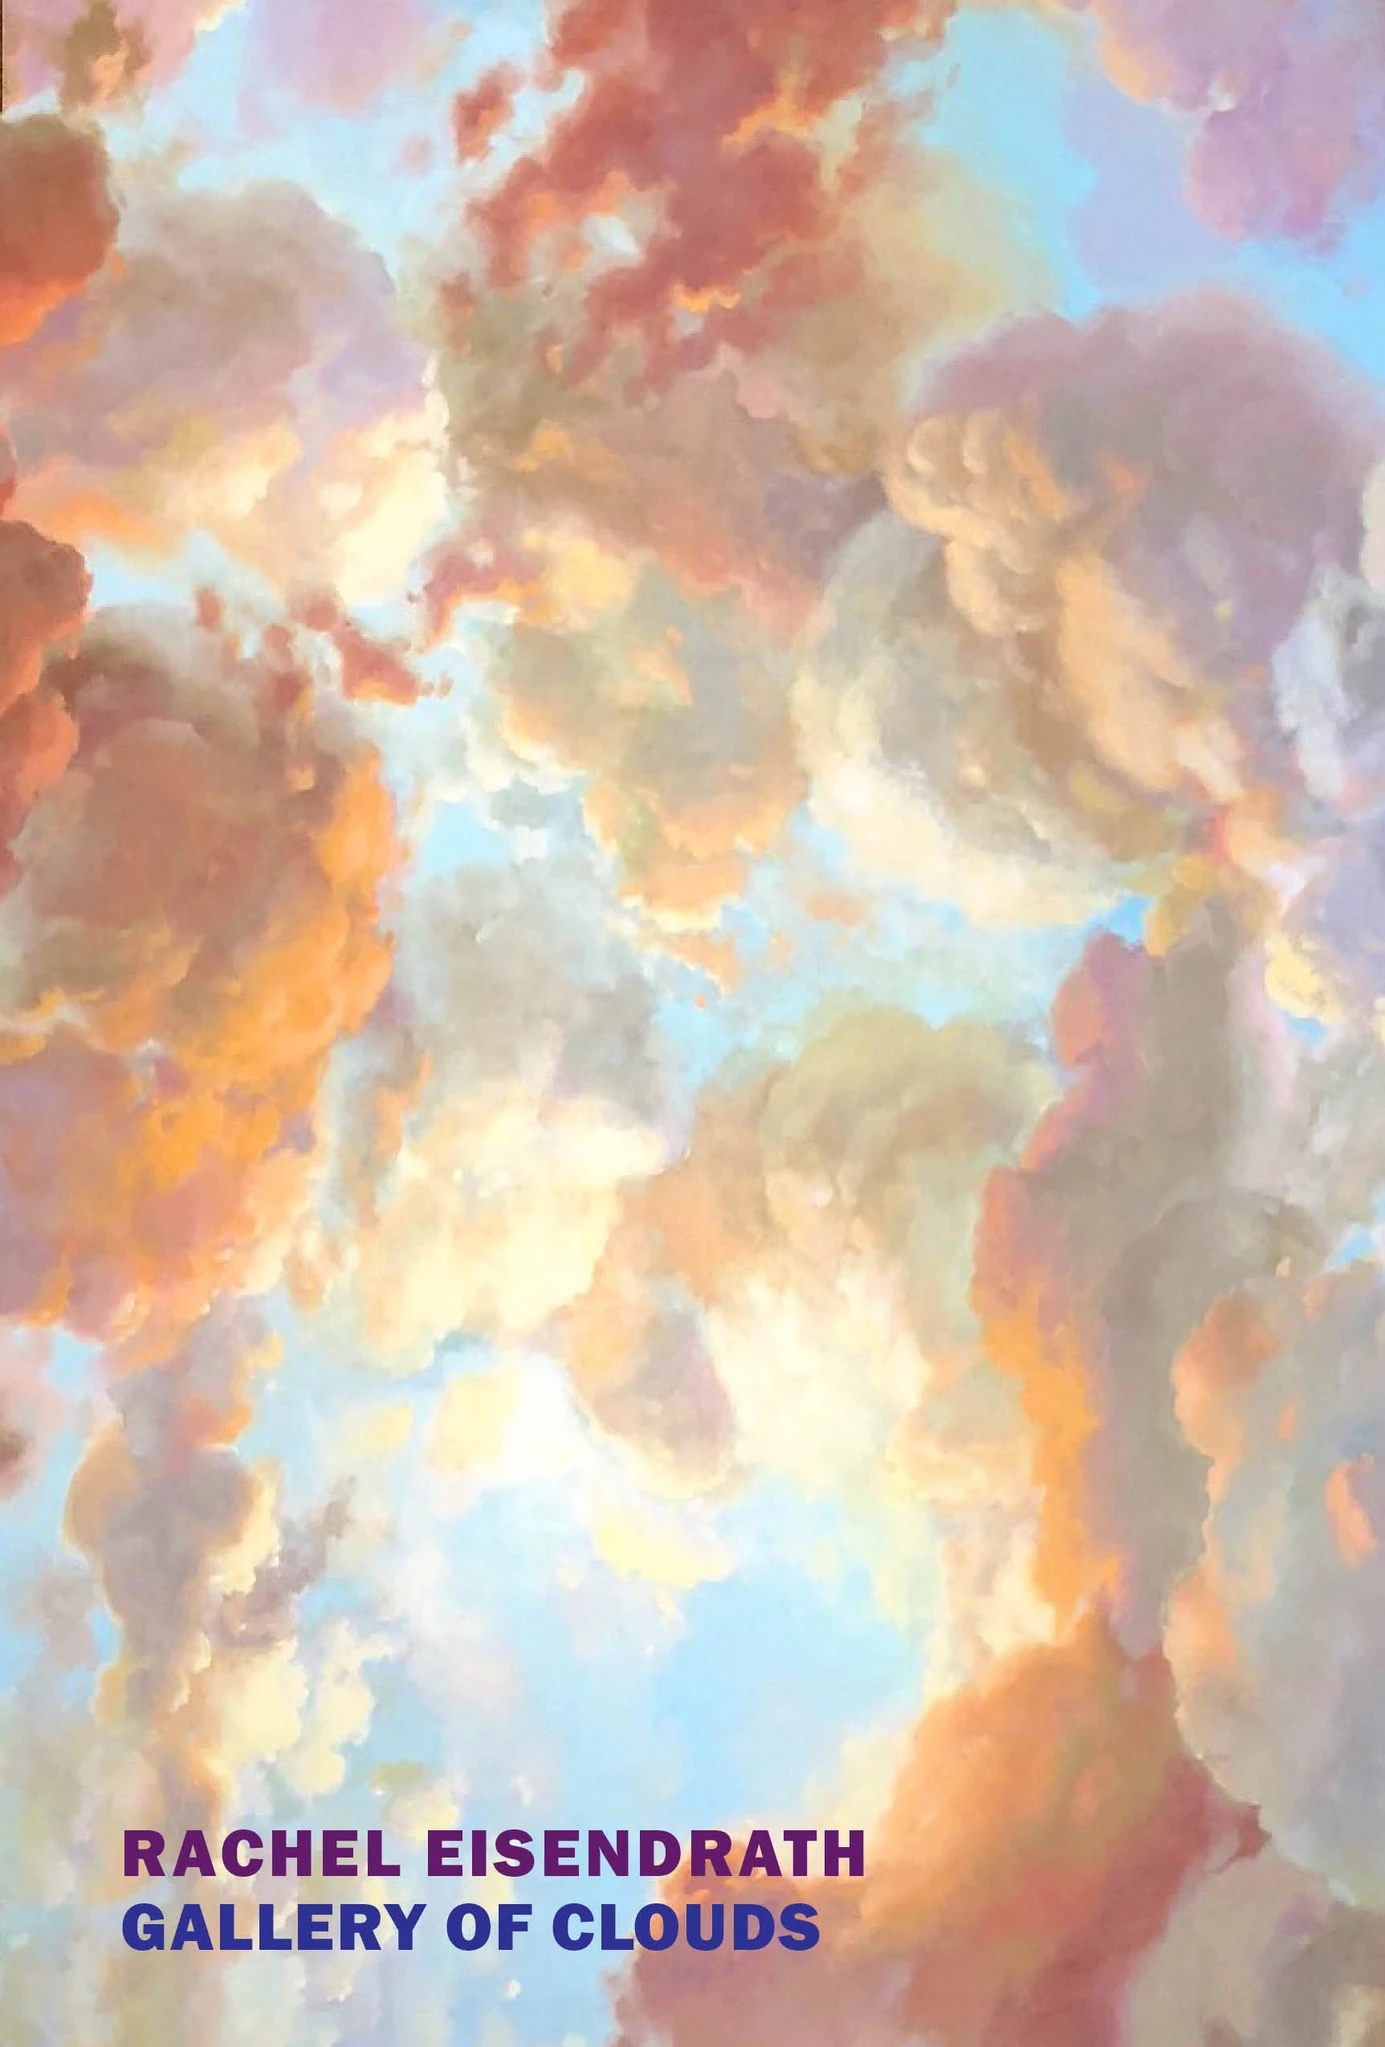 """Rachel Eisendrath,<a class=""""external"""" href=""""https://bookshop.org/a/317/9781681375434"""" target=""""_blank"""" rel=""""noopener""""><em>Gallery of Clouds</em></a>, cover design by Katy Homans; New York Review of Books (May 11)"""